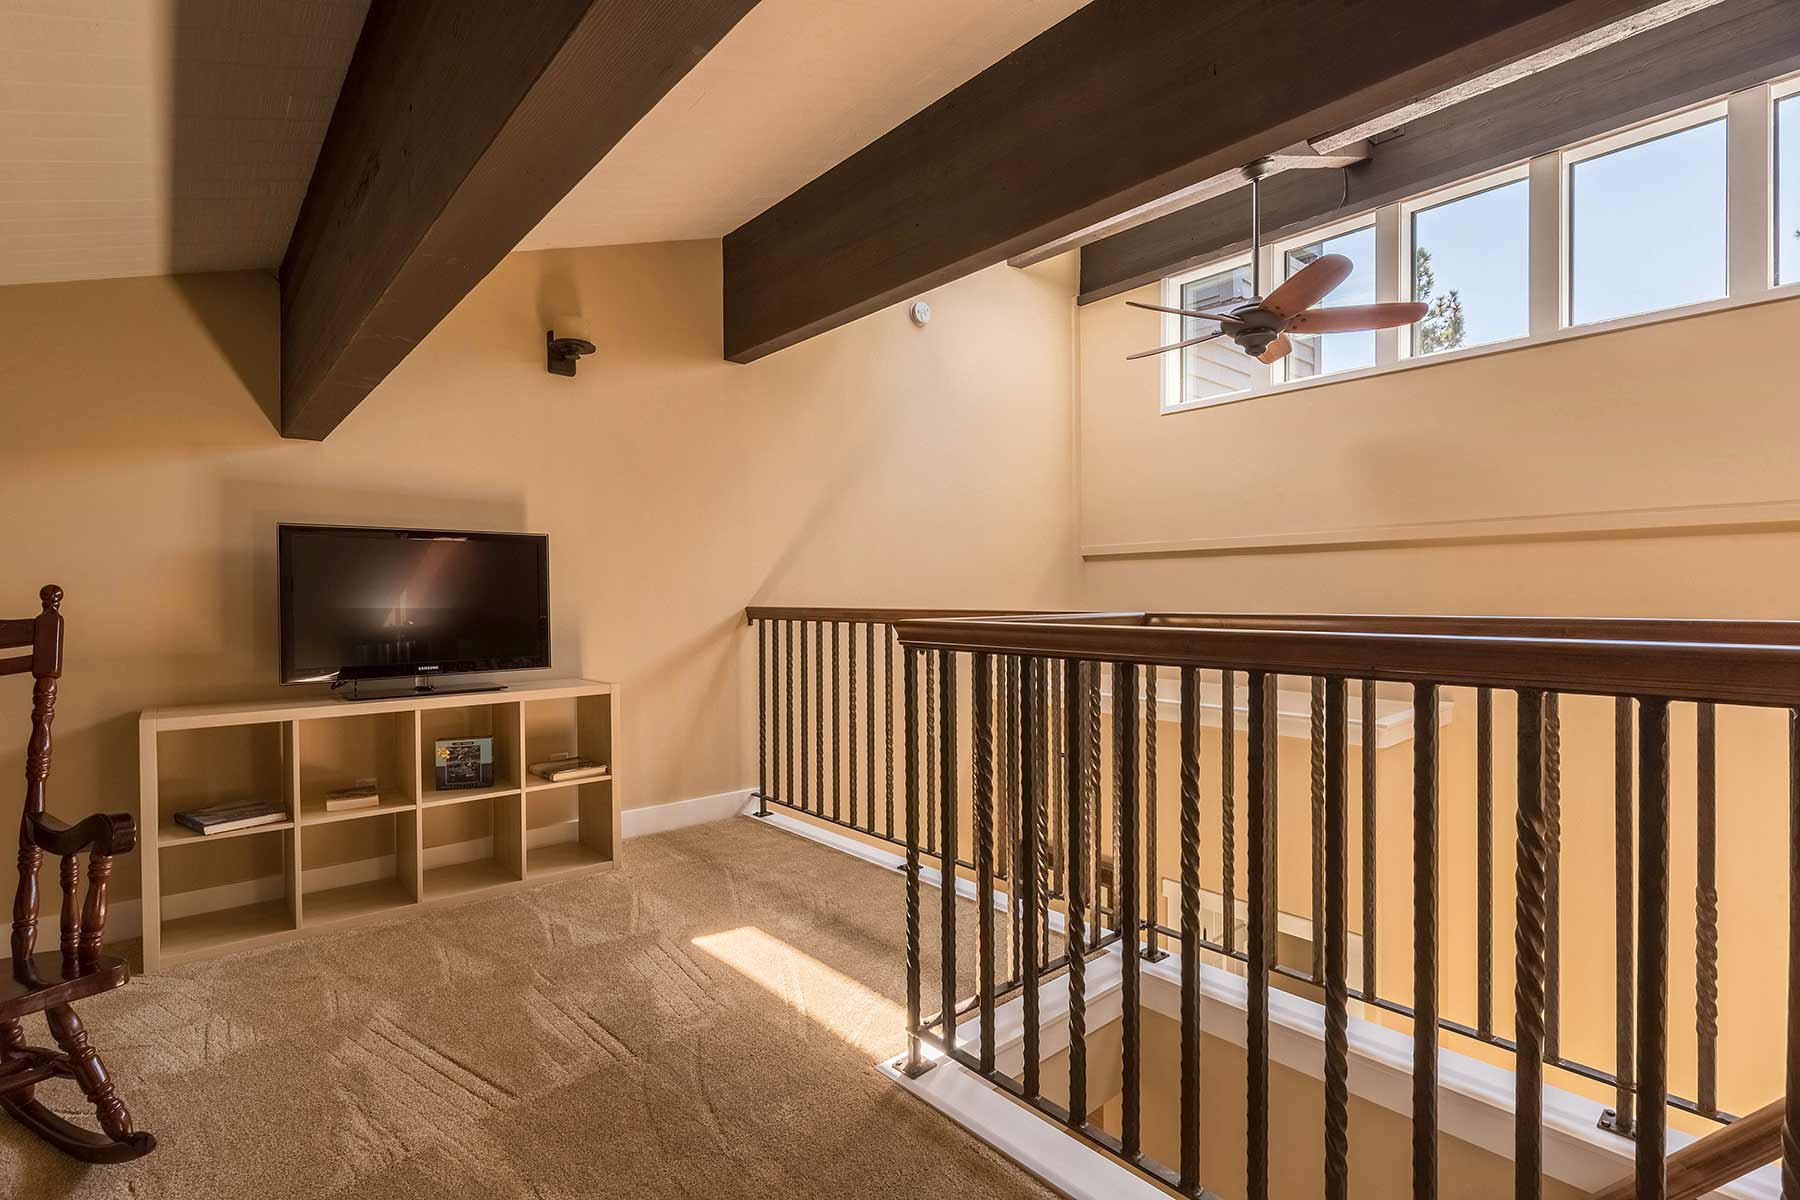 Additional photo for property listing at 9200 Brockway Springs Drive #46  Brockway, California 96143 United States